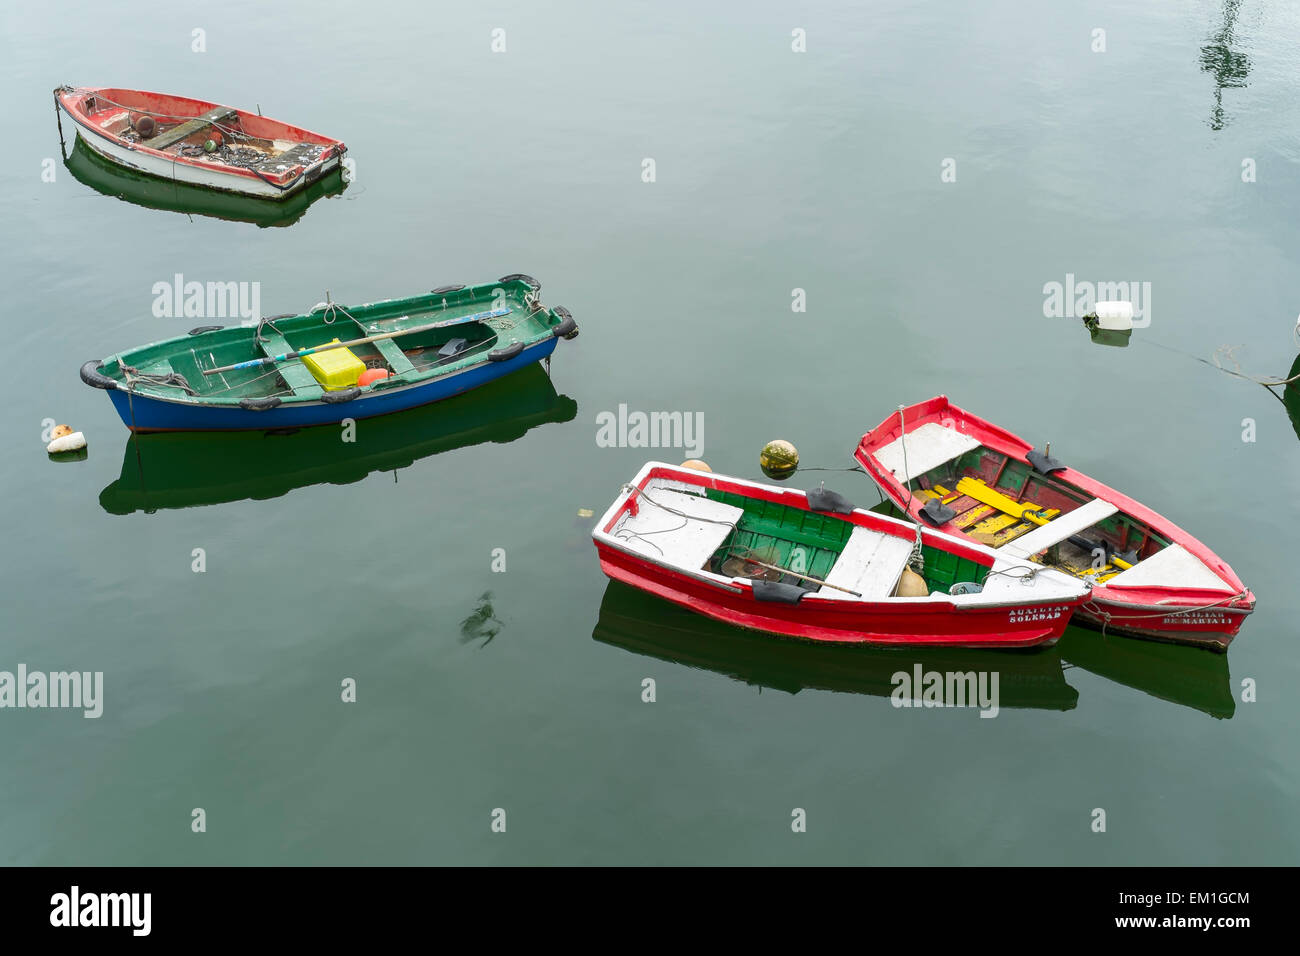 Boats in harbour. - Stock Image